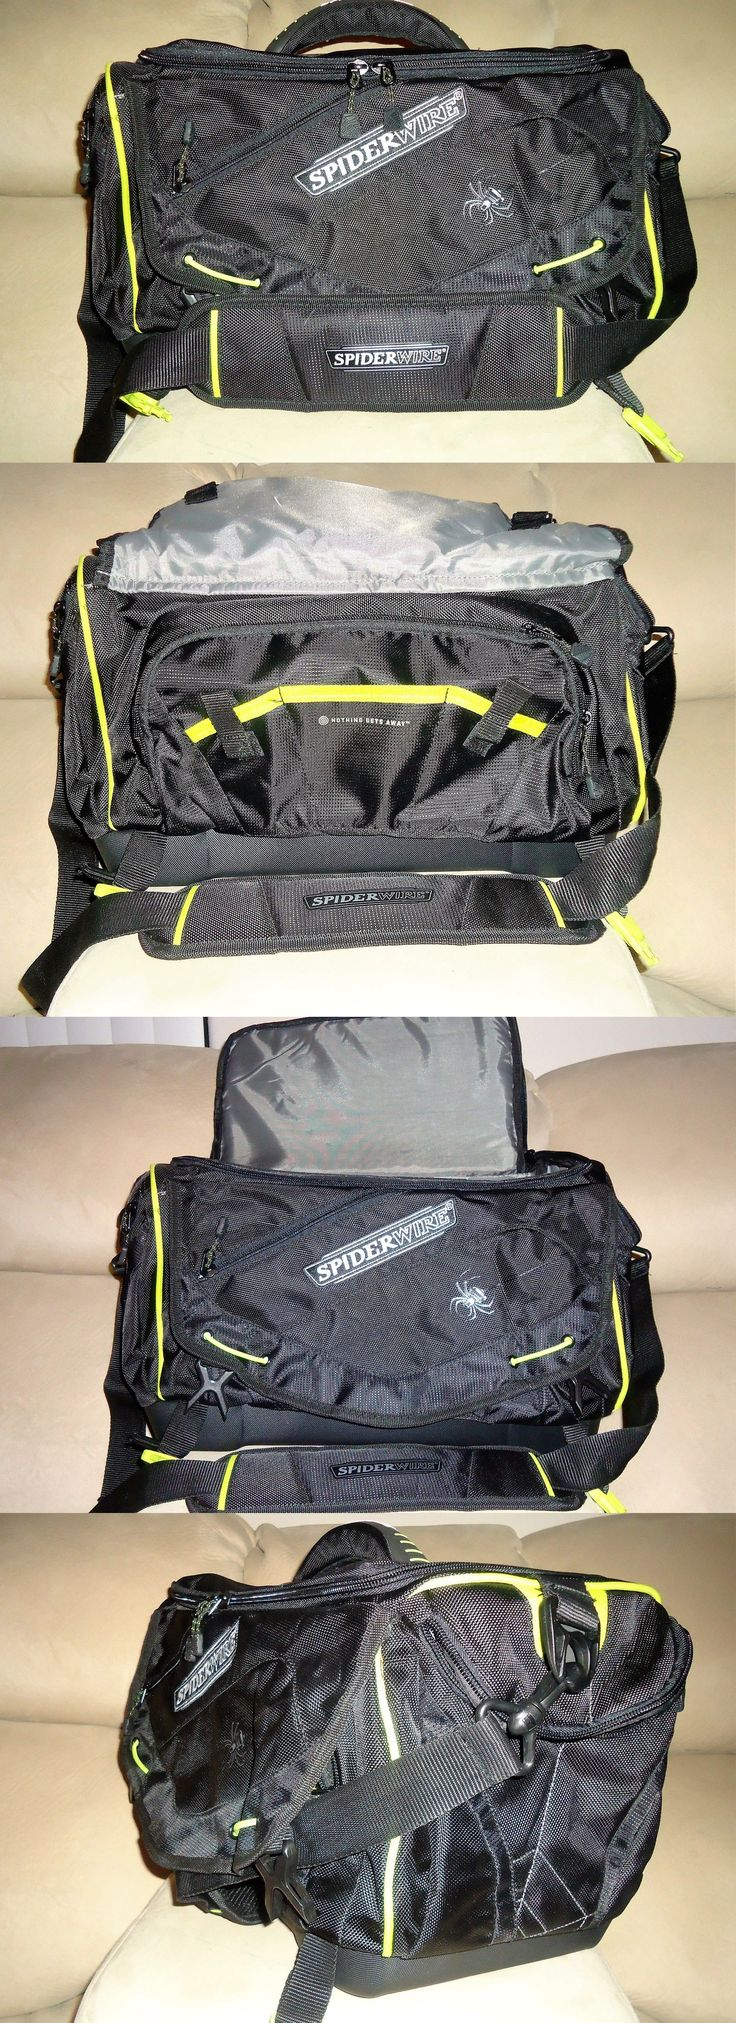 Tackle Boxes and Bags 22696: Large Spiderwire Black Fishing Tackle Bag -> BUY IT NOW ONLY: $48.5 on eBay!